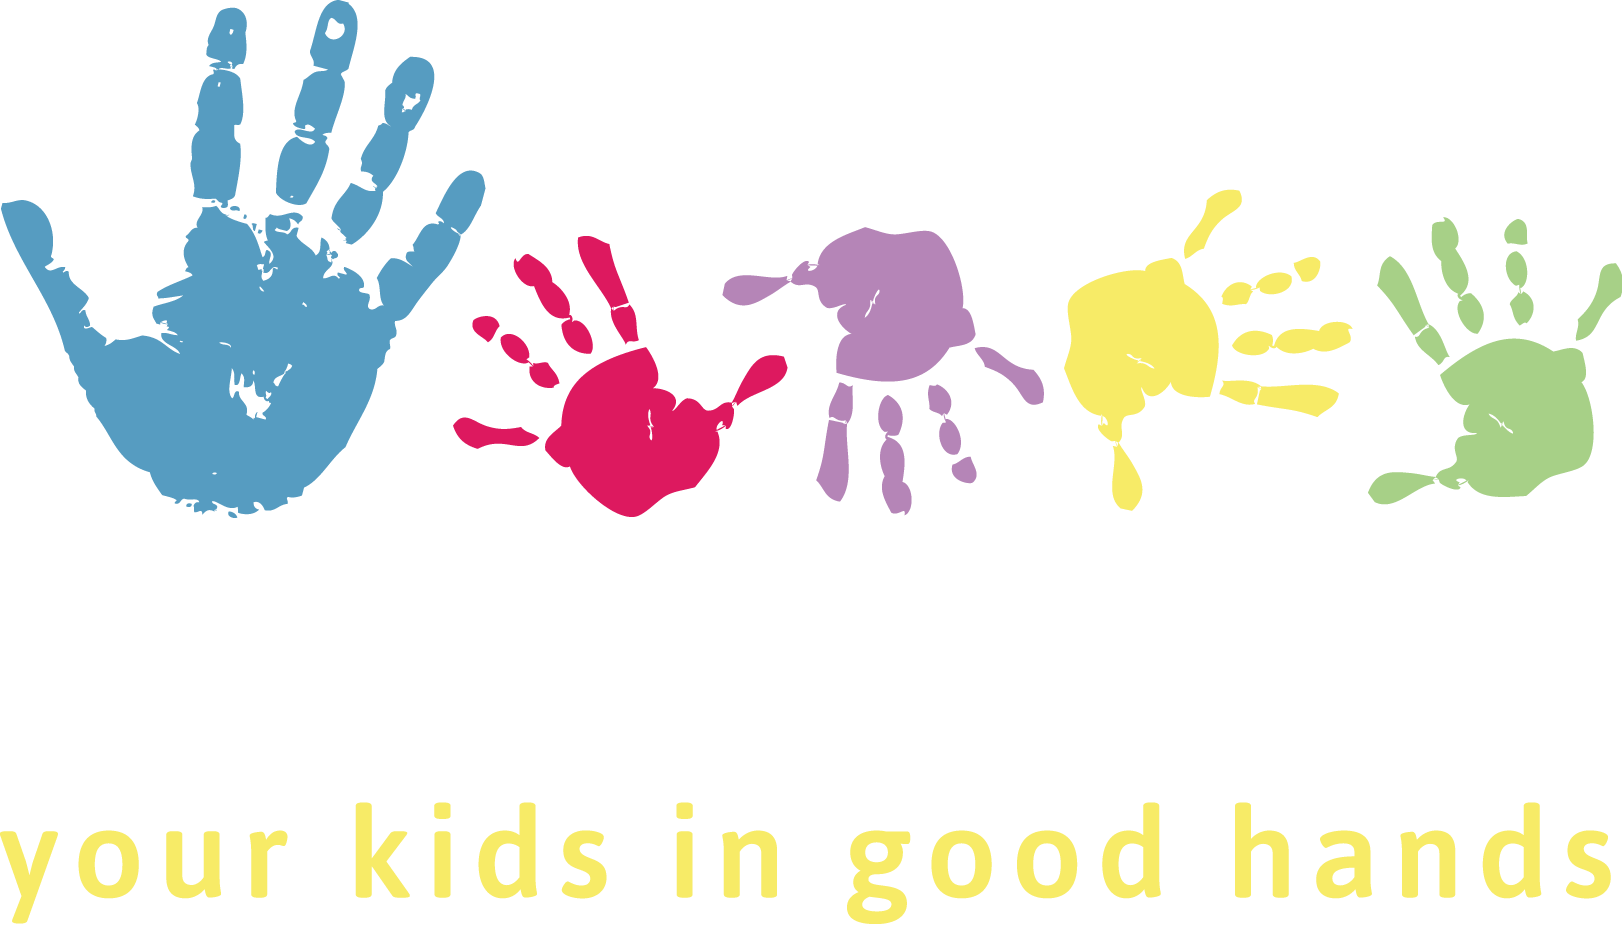 Kids hands png. Shuttle service catering for